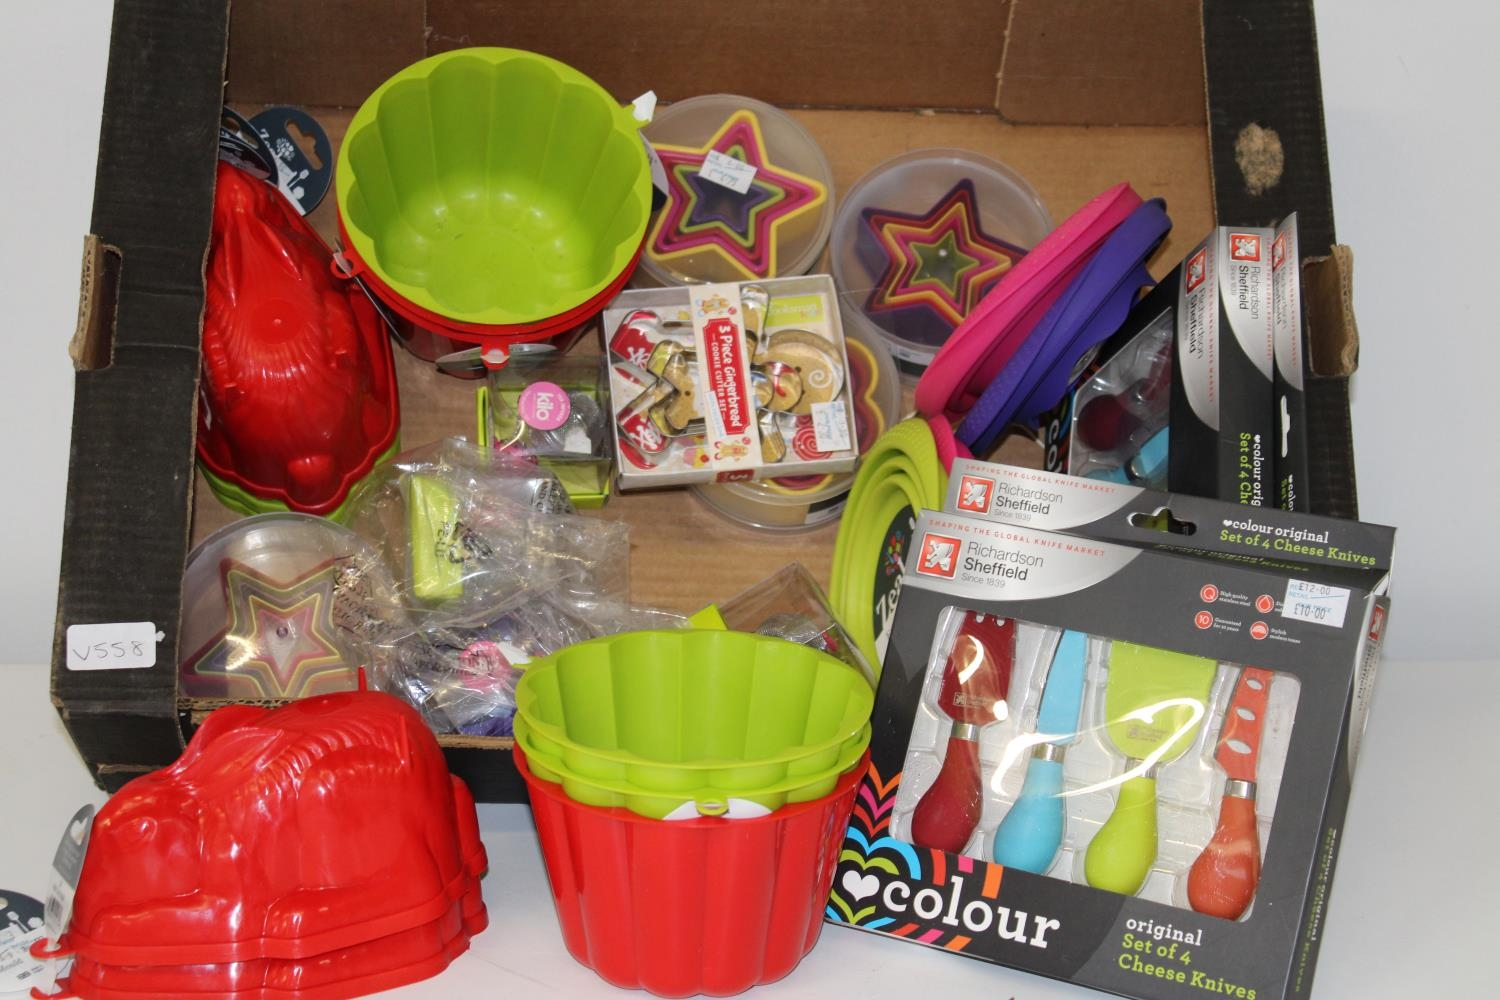 A box of brand new kitchen items, jelly moulds and cutters etc